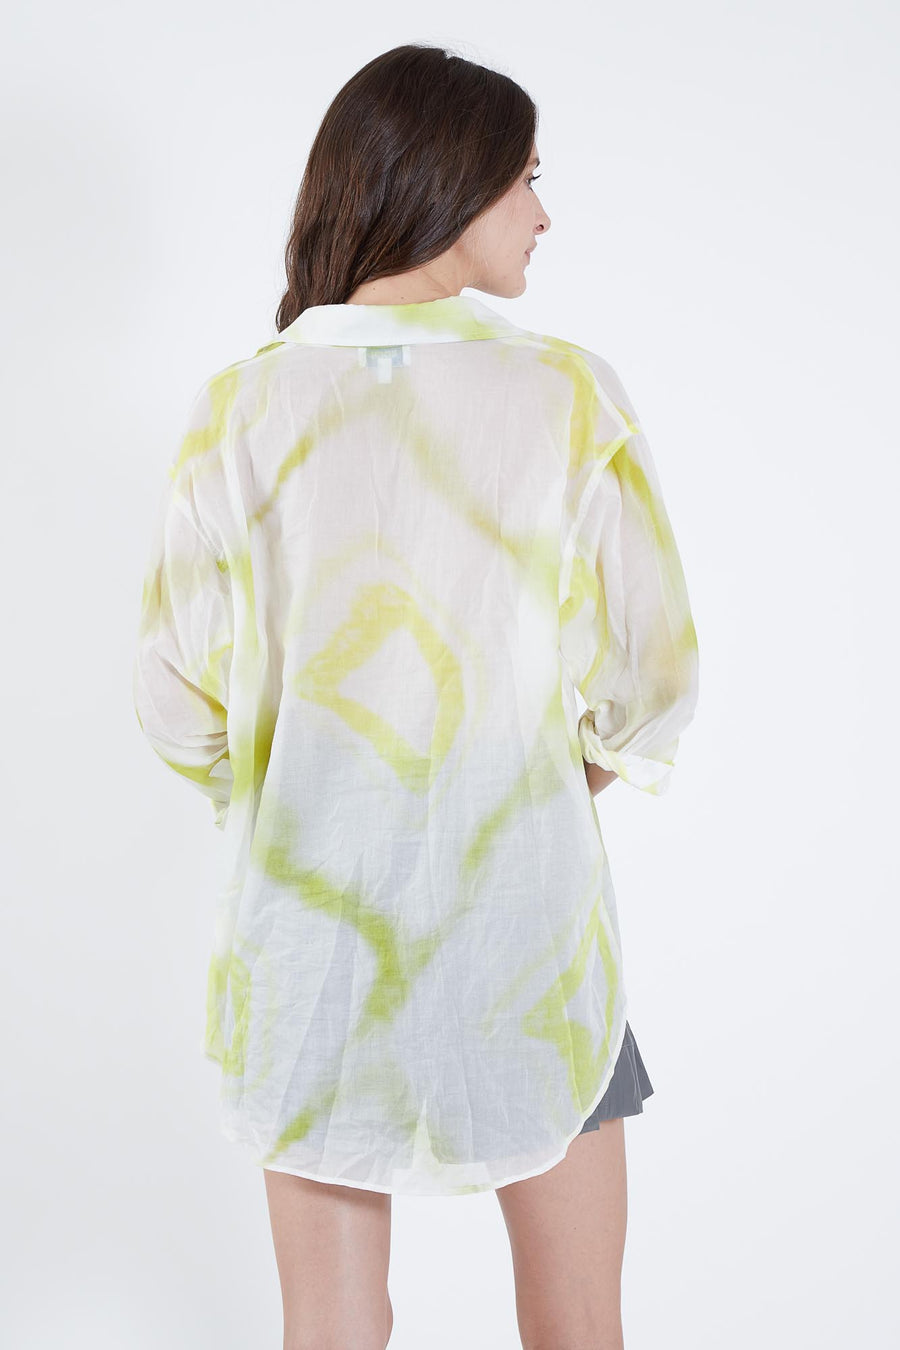 BRET TOP LIME TYE DYE  *LIMITED*EDITION*